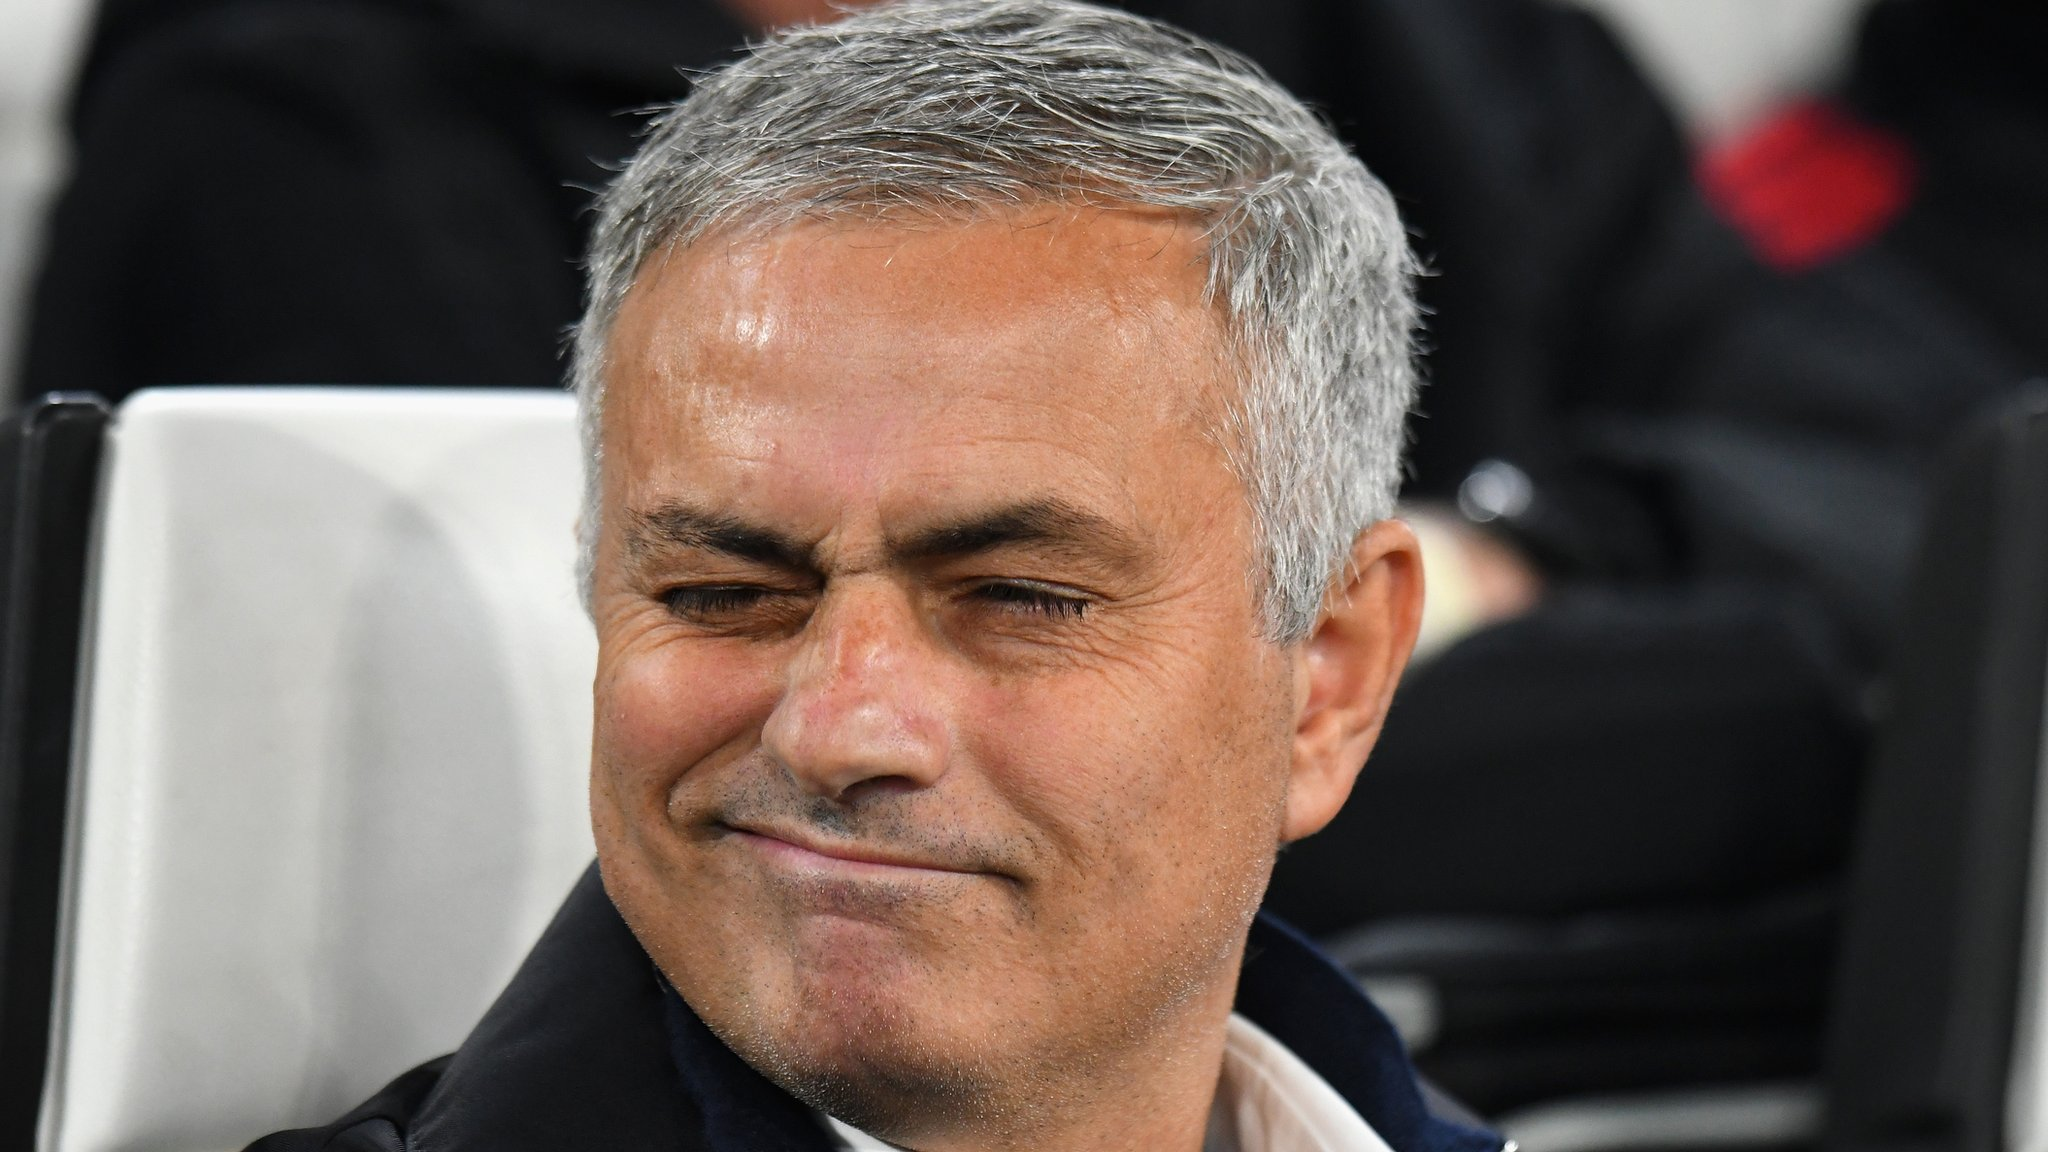 Mourinho will not comment on Man Utd out of 'deepest respect'